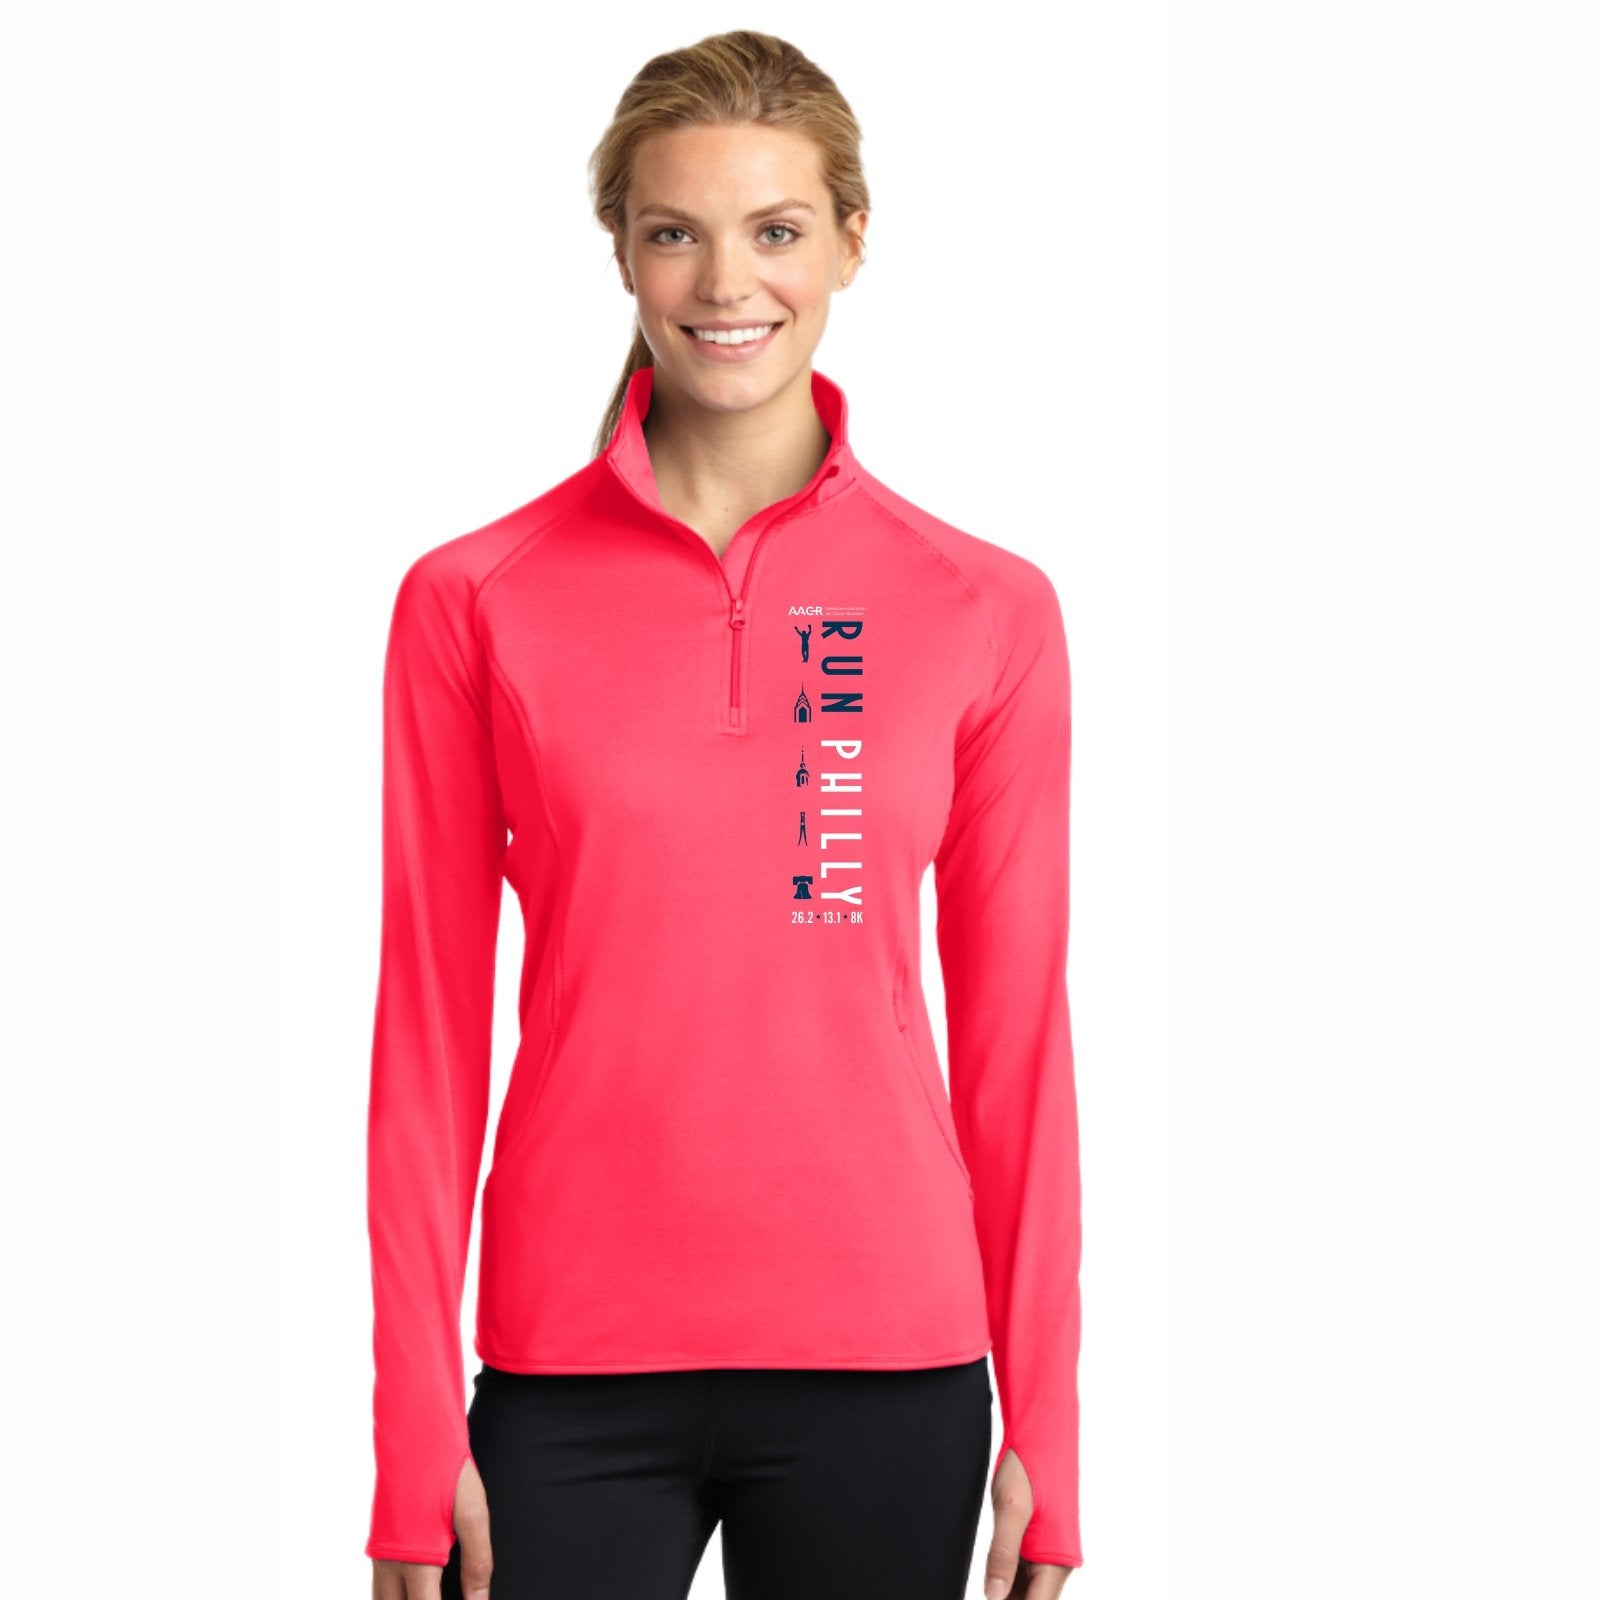 Women's Thumbhole Tech 1/2 Zip -Hot Coral 'LCP Run Philly Design' - AACR Philadelphia Marathon